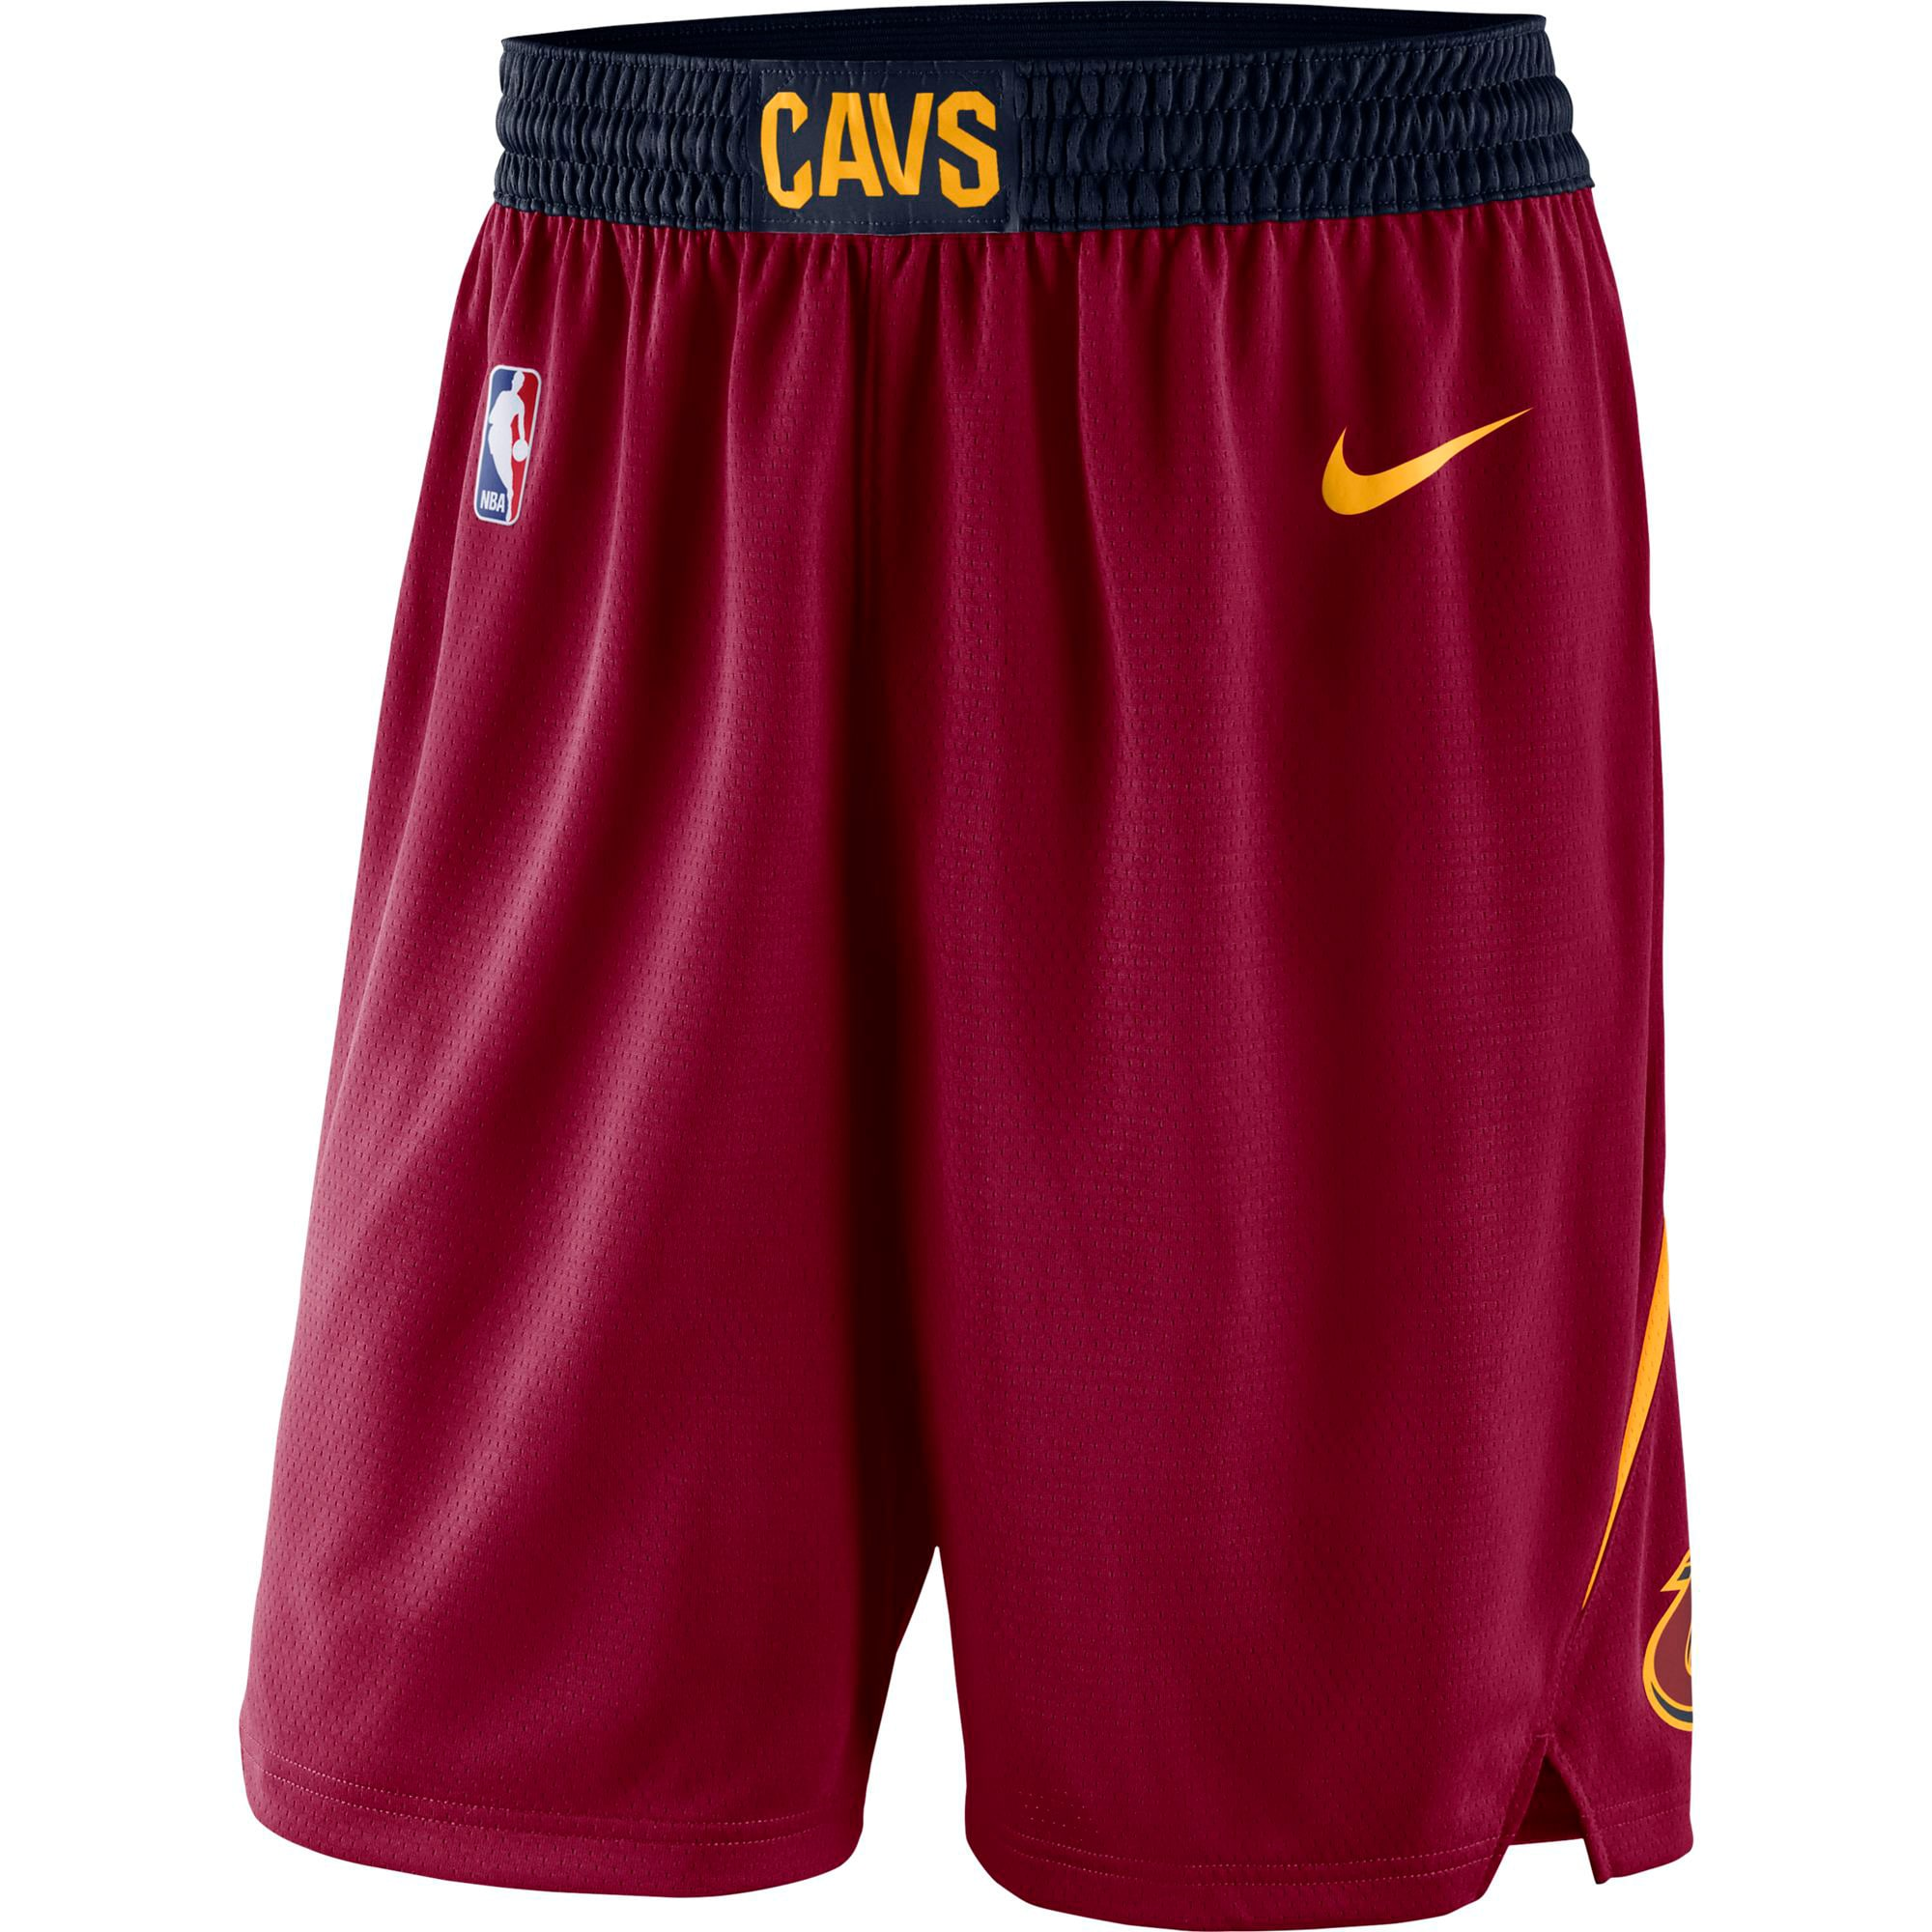 Cleveland Cavaliers Nike Icon Swingman Basketball Shorts - Wine